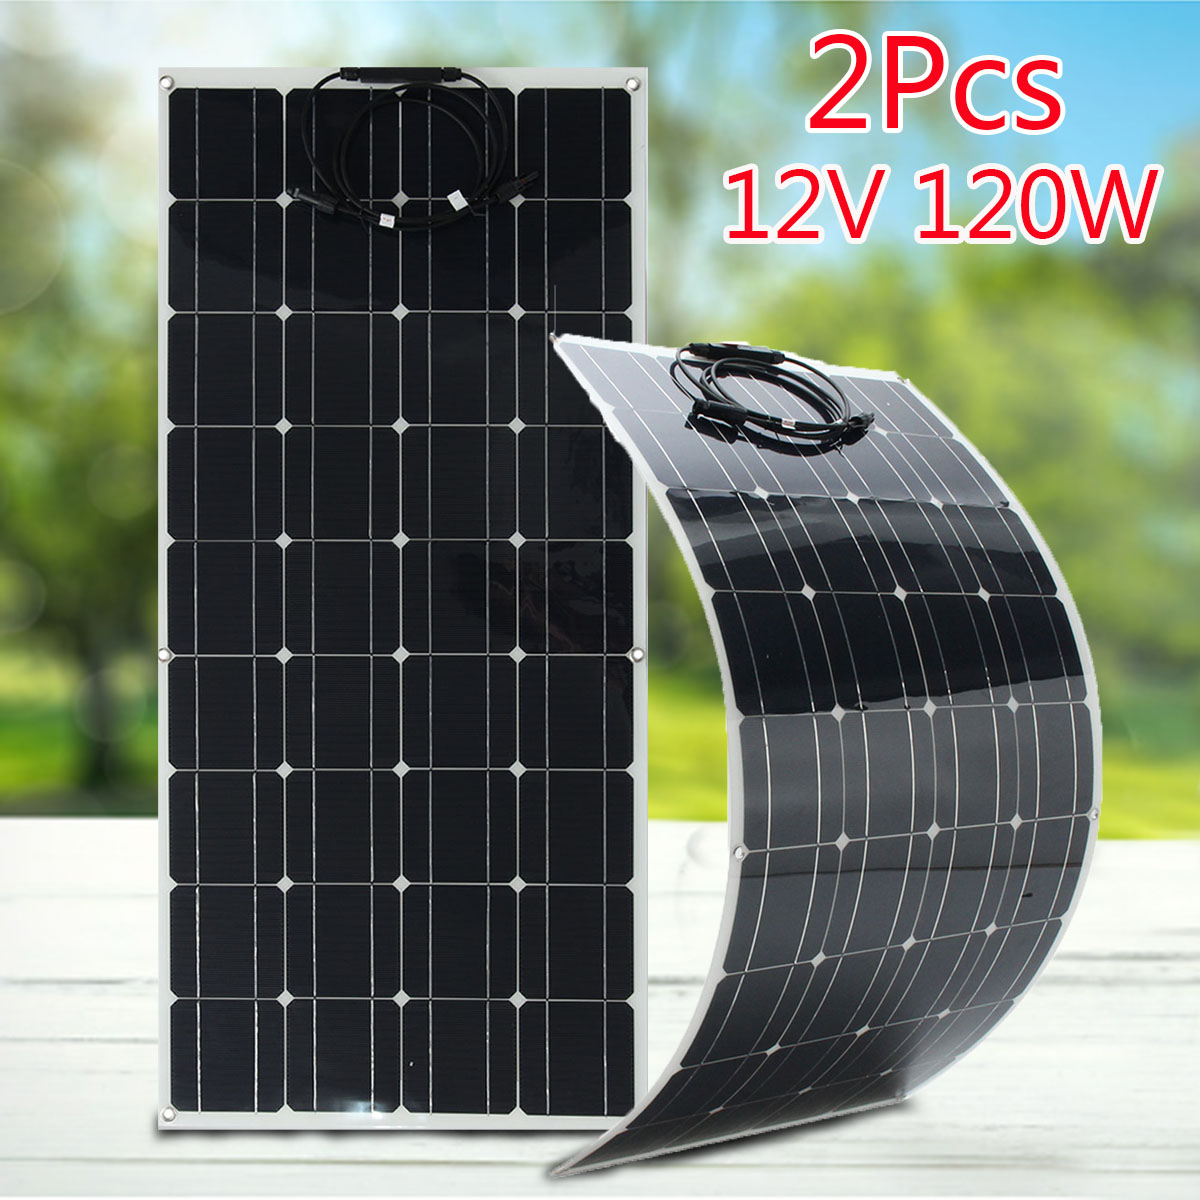 2Pcs 120W 12V Solar Panel Charger Flexible Monocrystalline Solar Cells Module Kit 12V Car Battery Charger For Outdoor Camping цена и фото